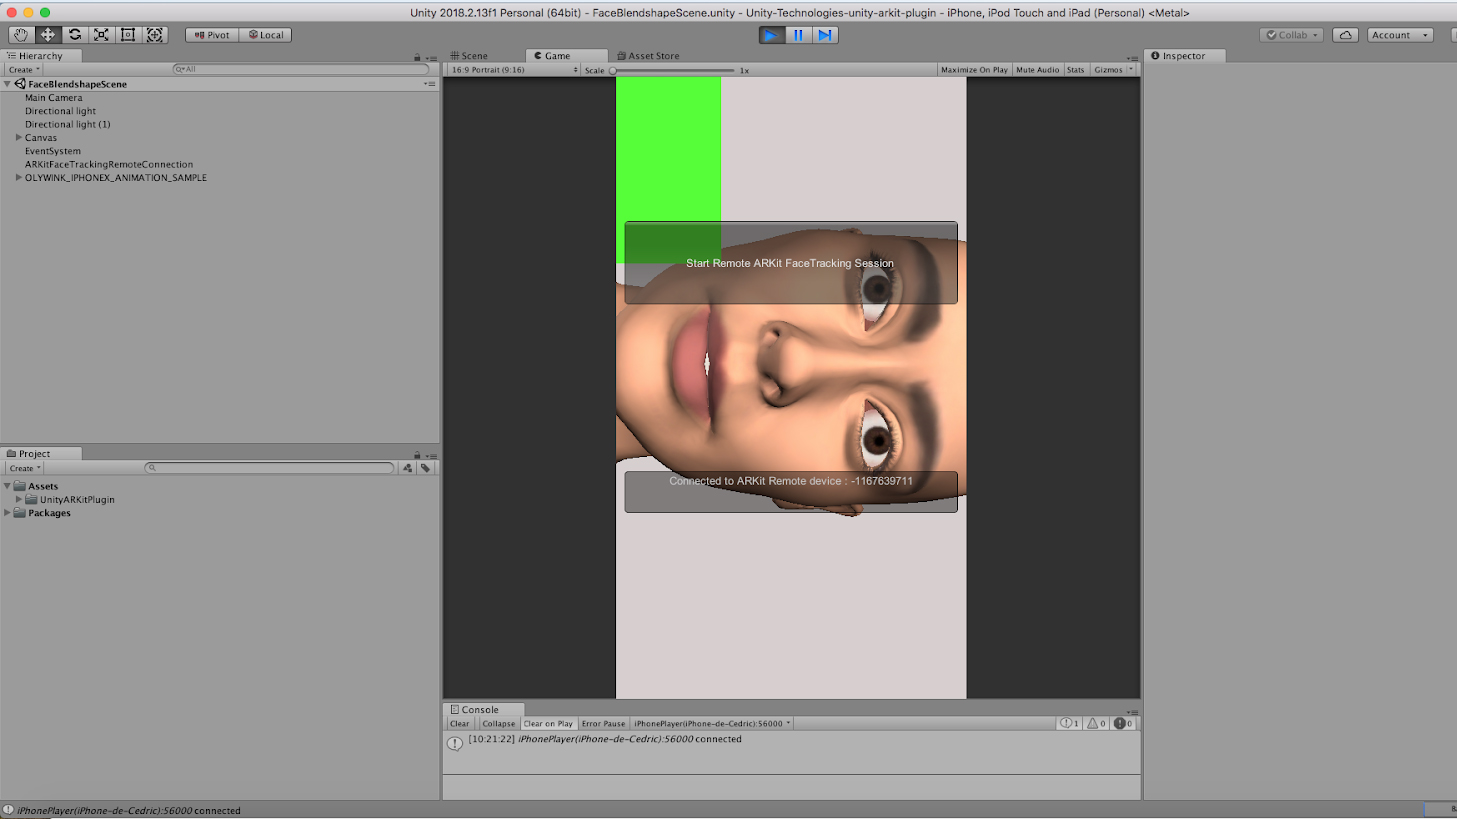 Unity Facial AR Remote - Live Face Animation with an iPhone X - Step 7